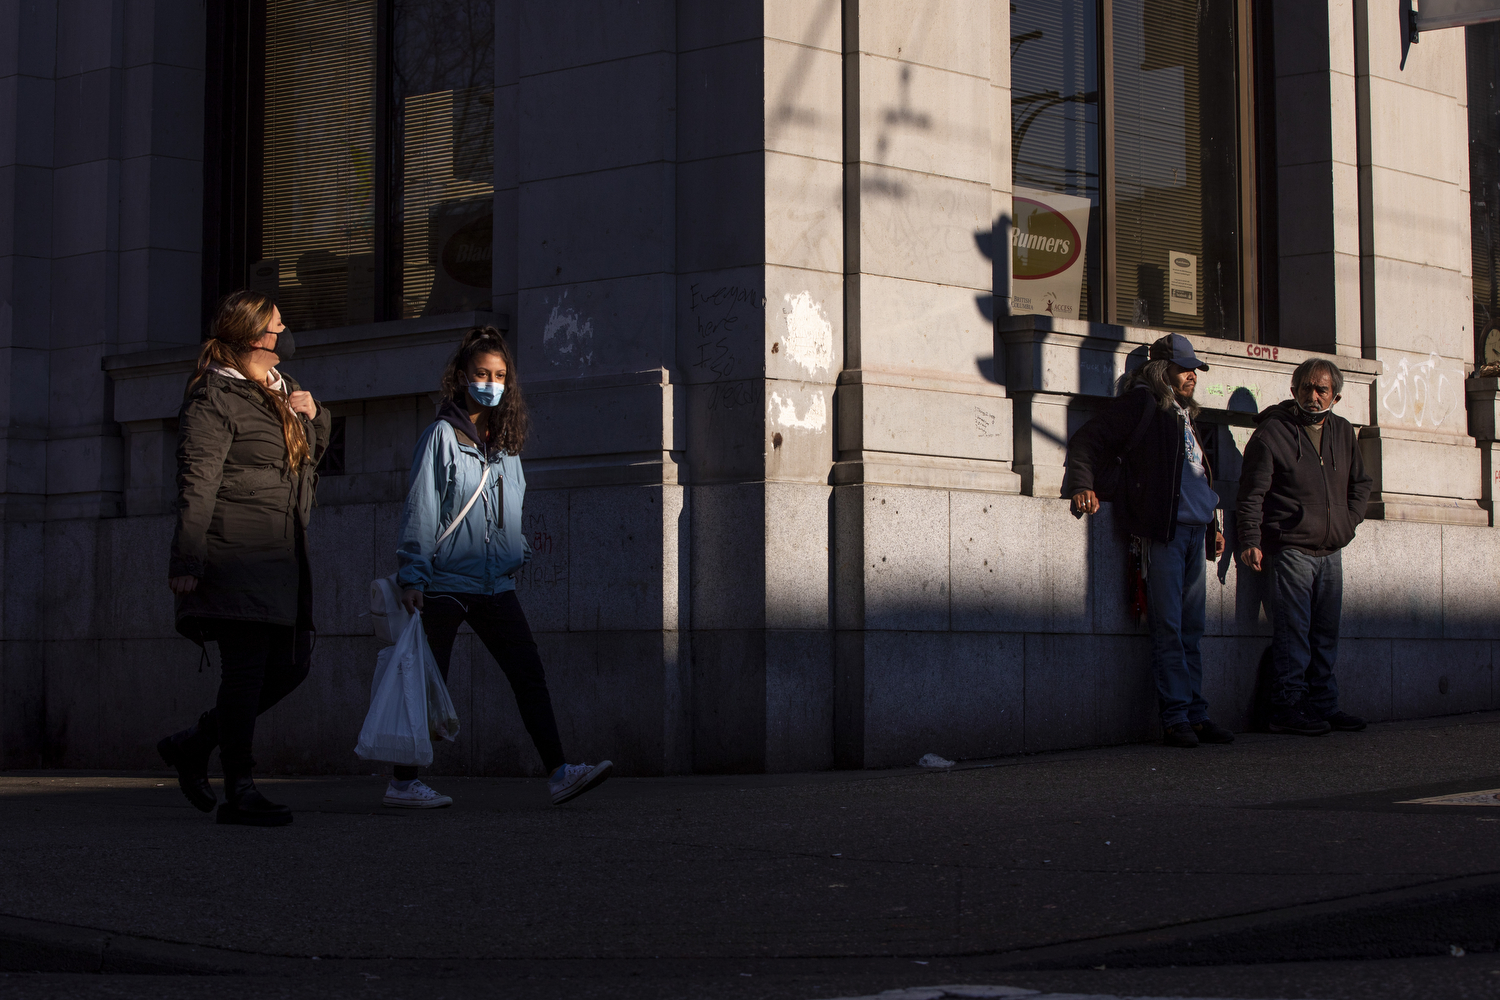 People wearing face masks walk near Main and Hastings streets in the Downtown Eastside neighbourhood of Vancouver on Dec. 4, 2020. (Ben Nelms/CBC Vancouver)